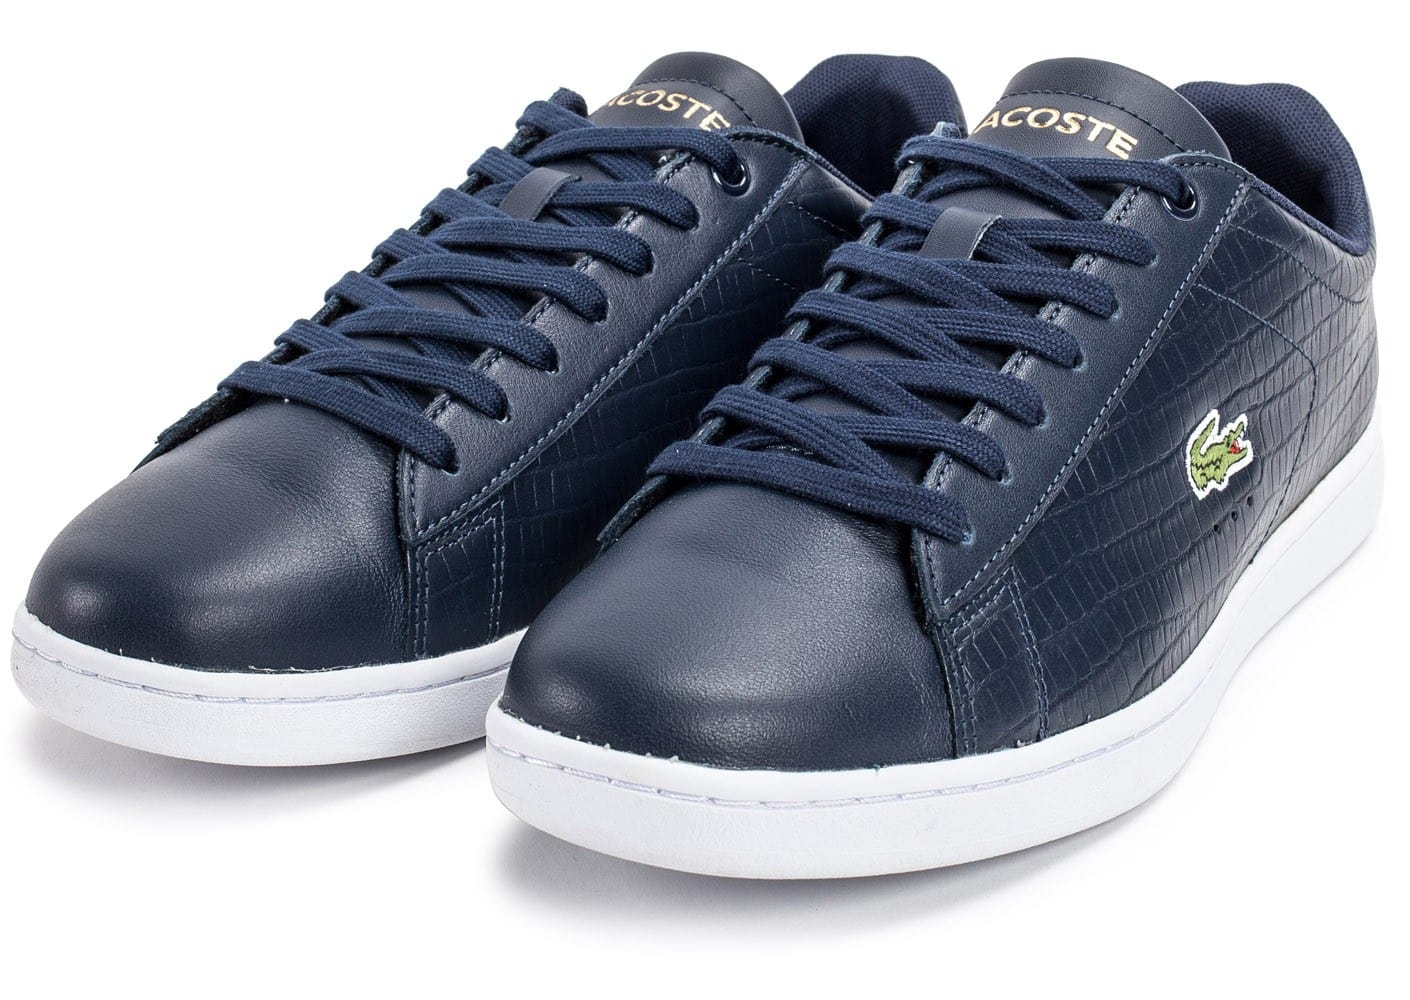 c6772650a25 Lacoste Carnaby Evo Croc bleu marine - Chaussures Baskets homme ...